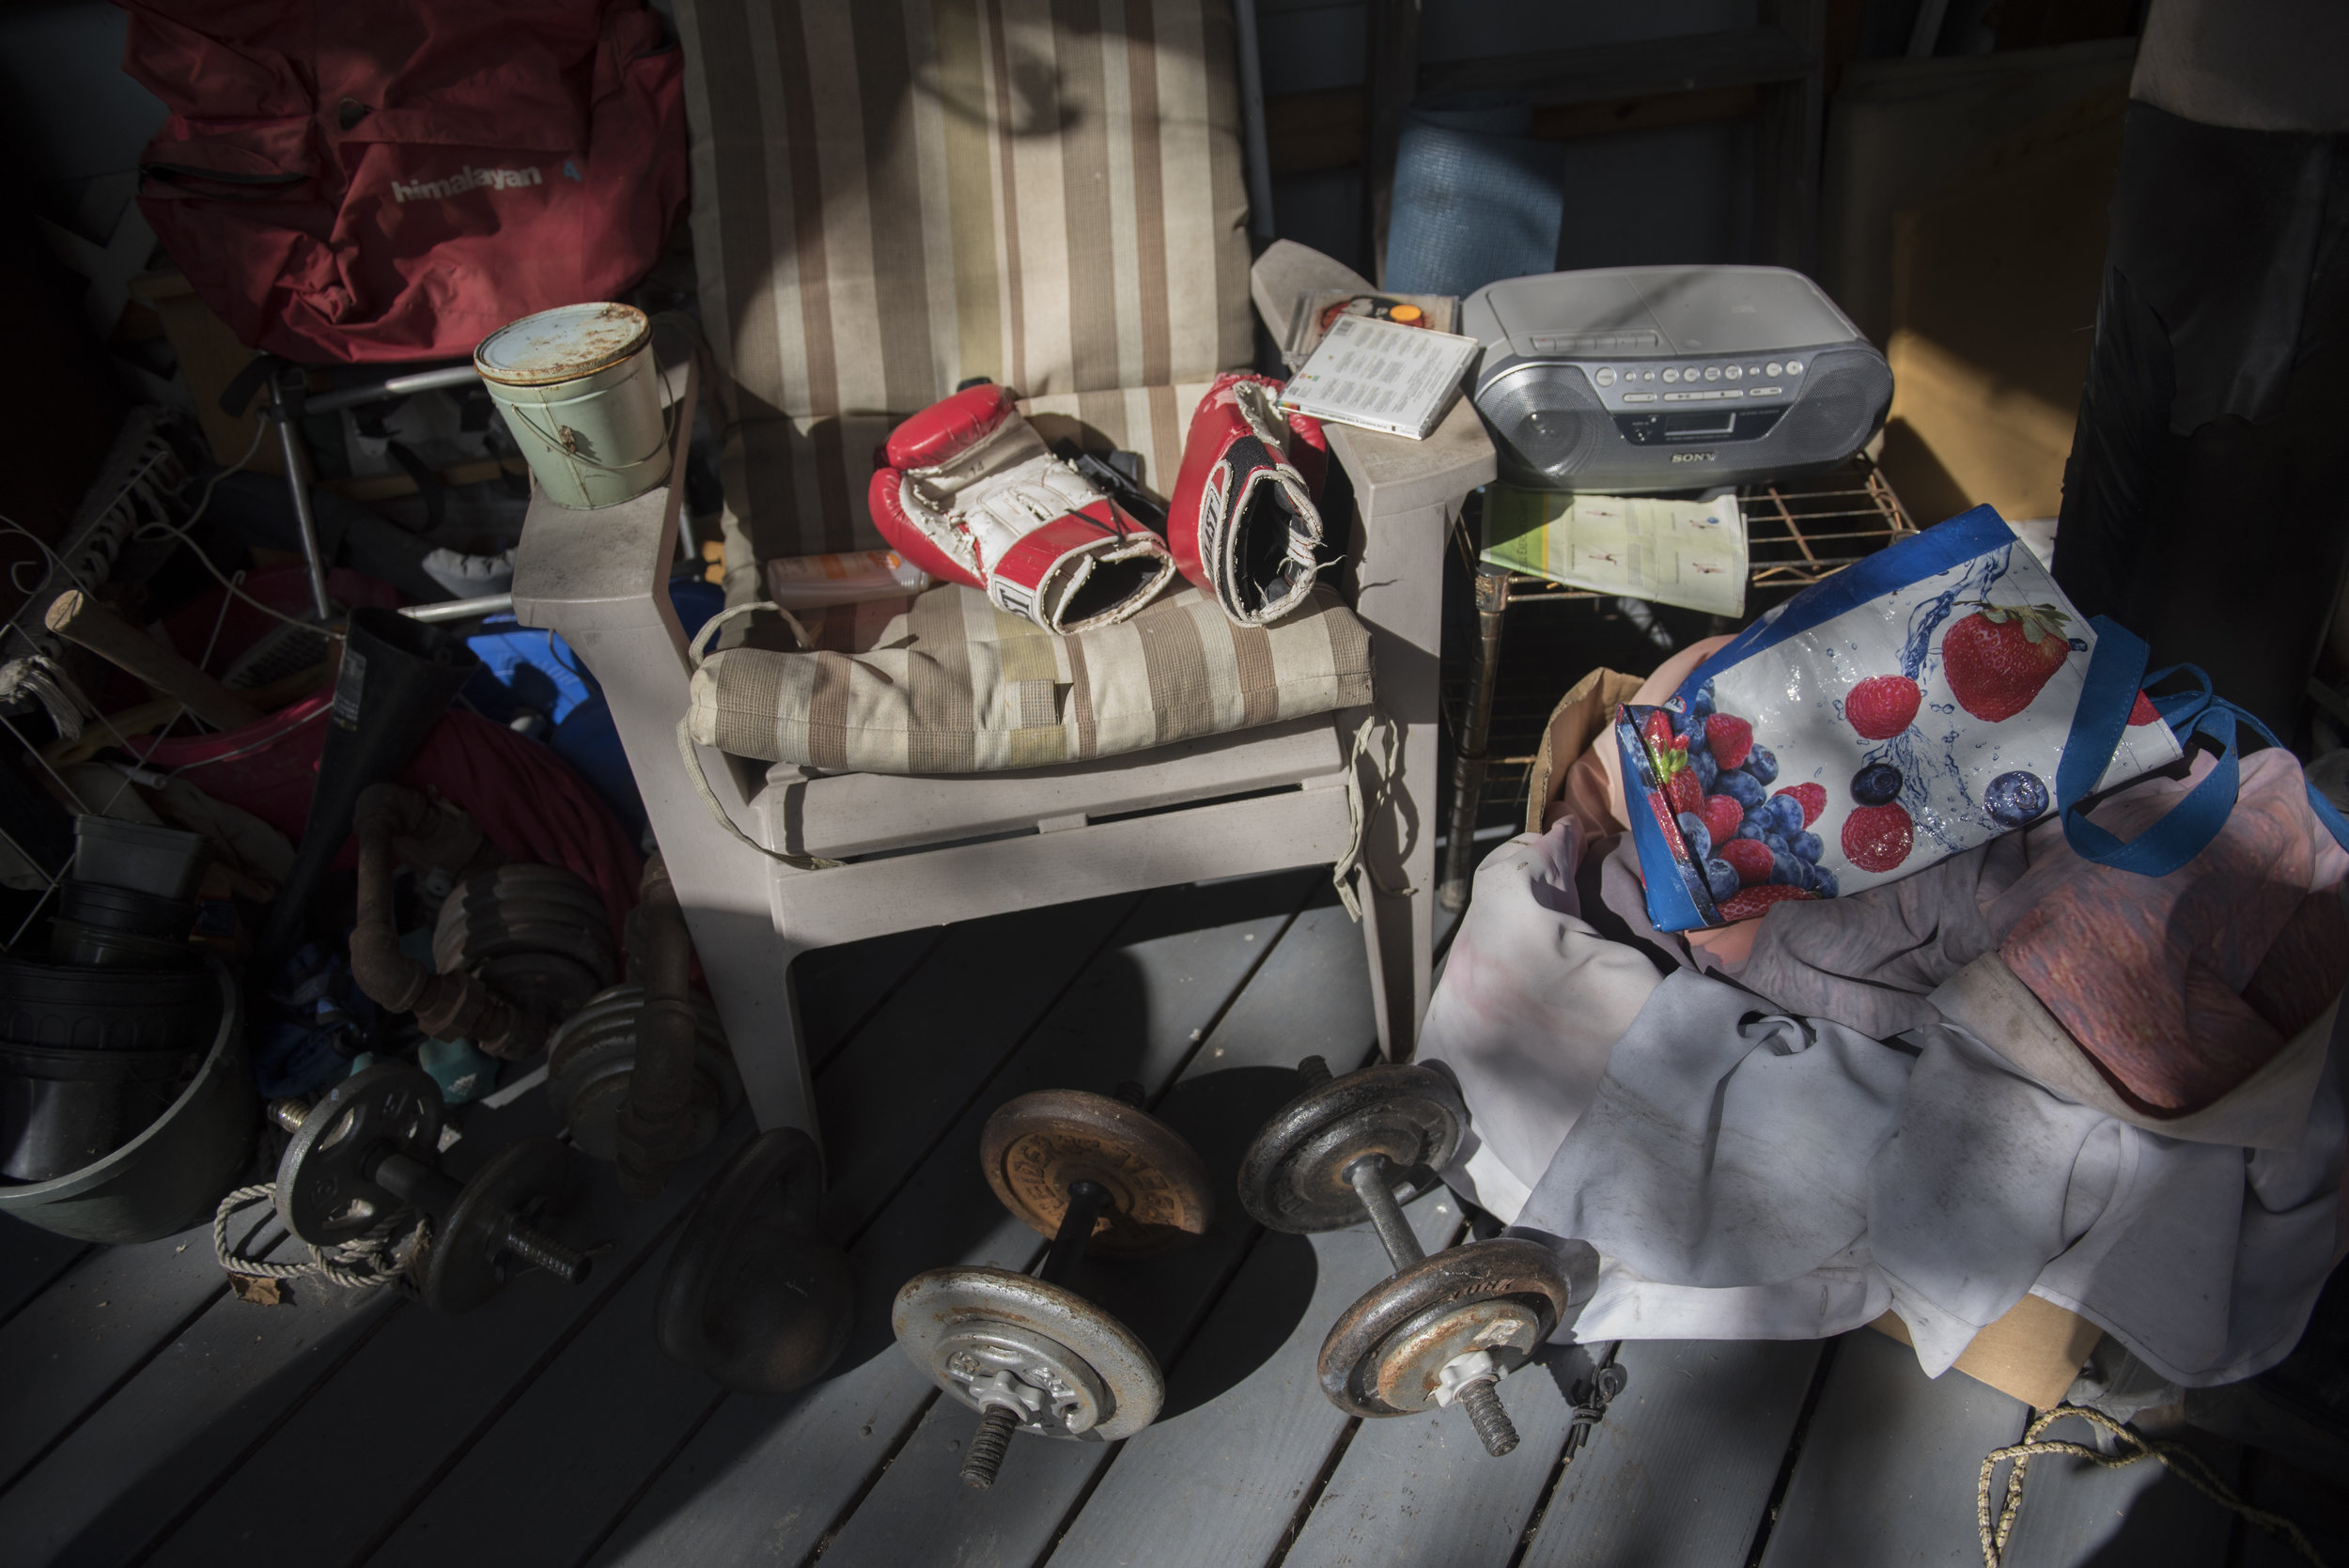 Patrick McGee's boxing gloves and weights lie out on his back porch on Sept. 3, 2017 in Athens, Ohio. To keep in shape, McGee rides a workout bike, lifts weights and boxes with a punching bag.